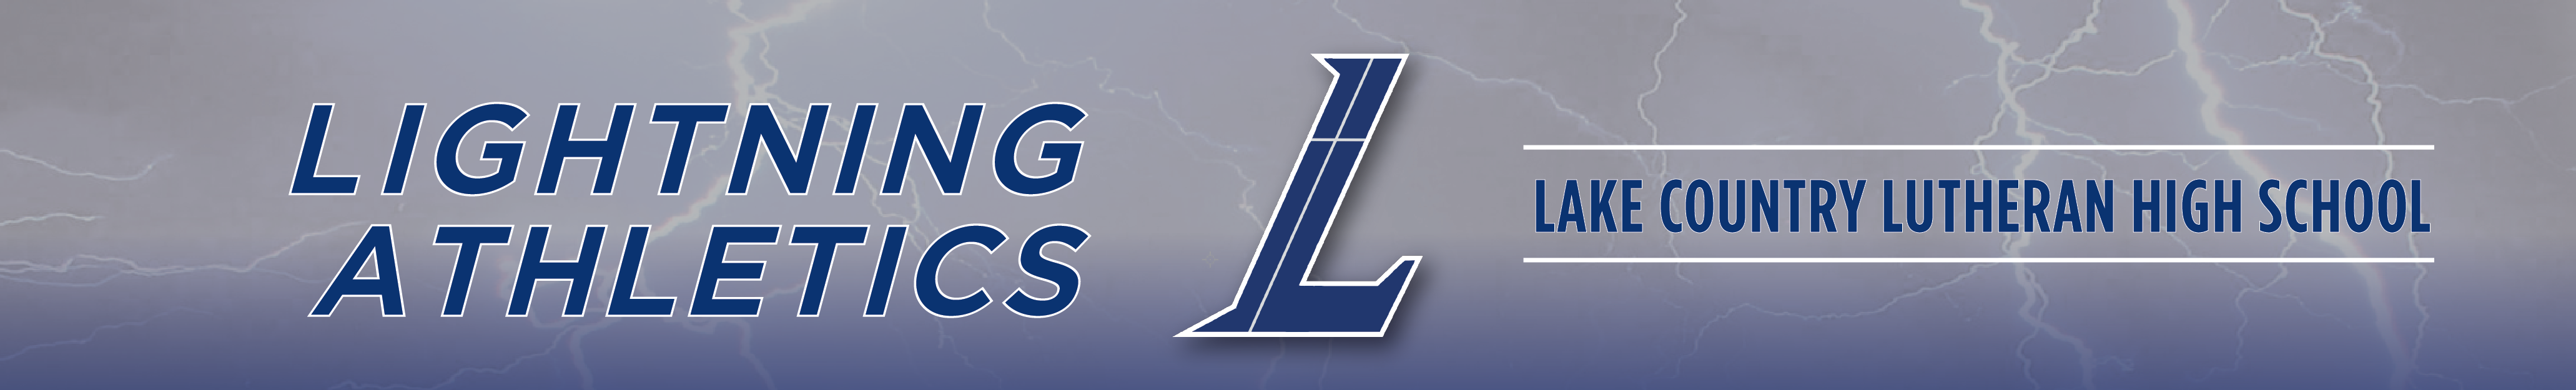 Lcl athletics site banner 01